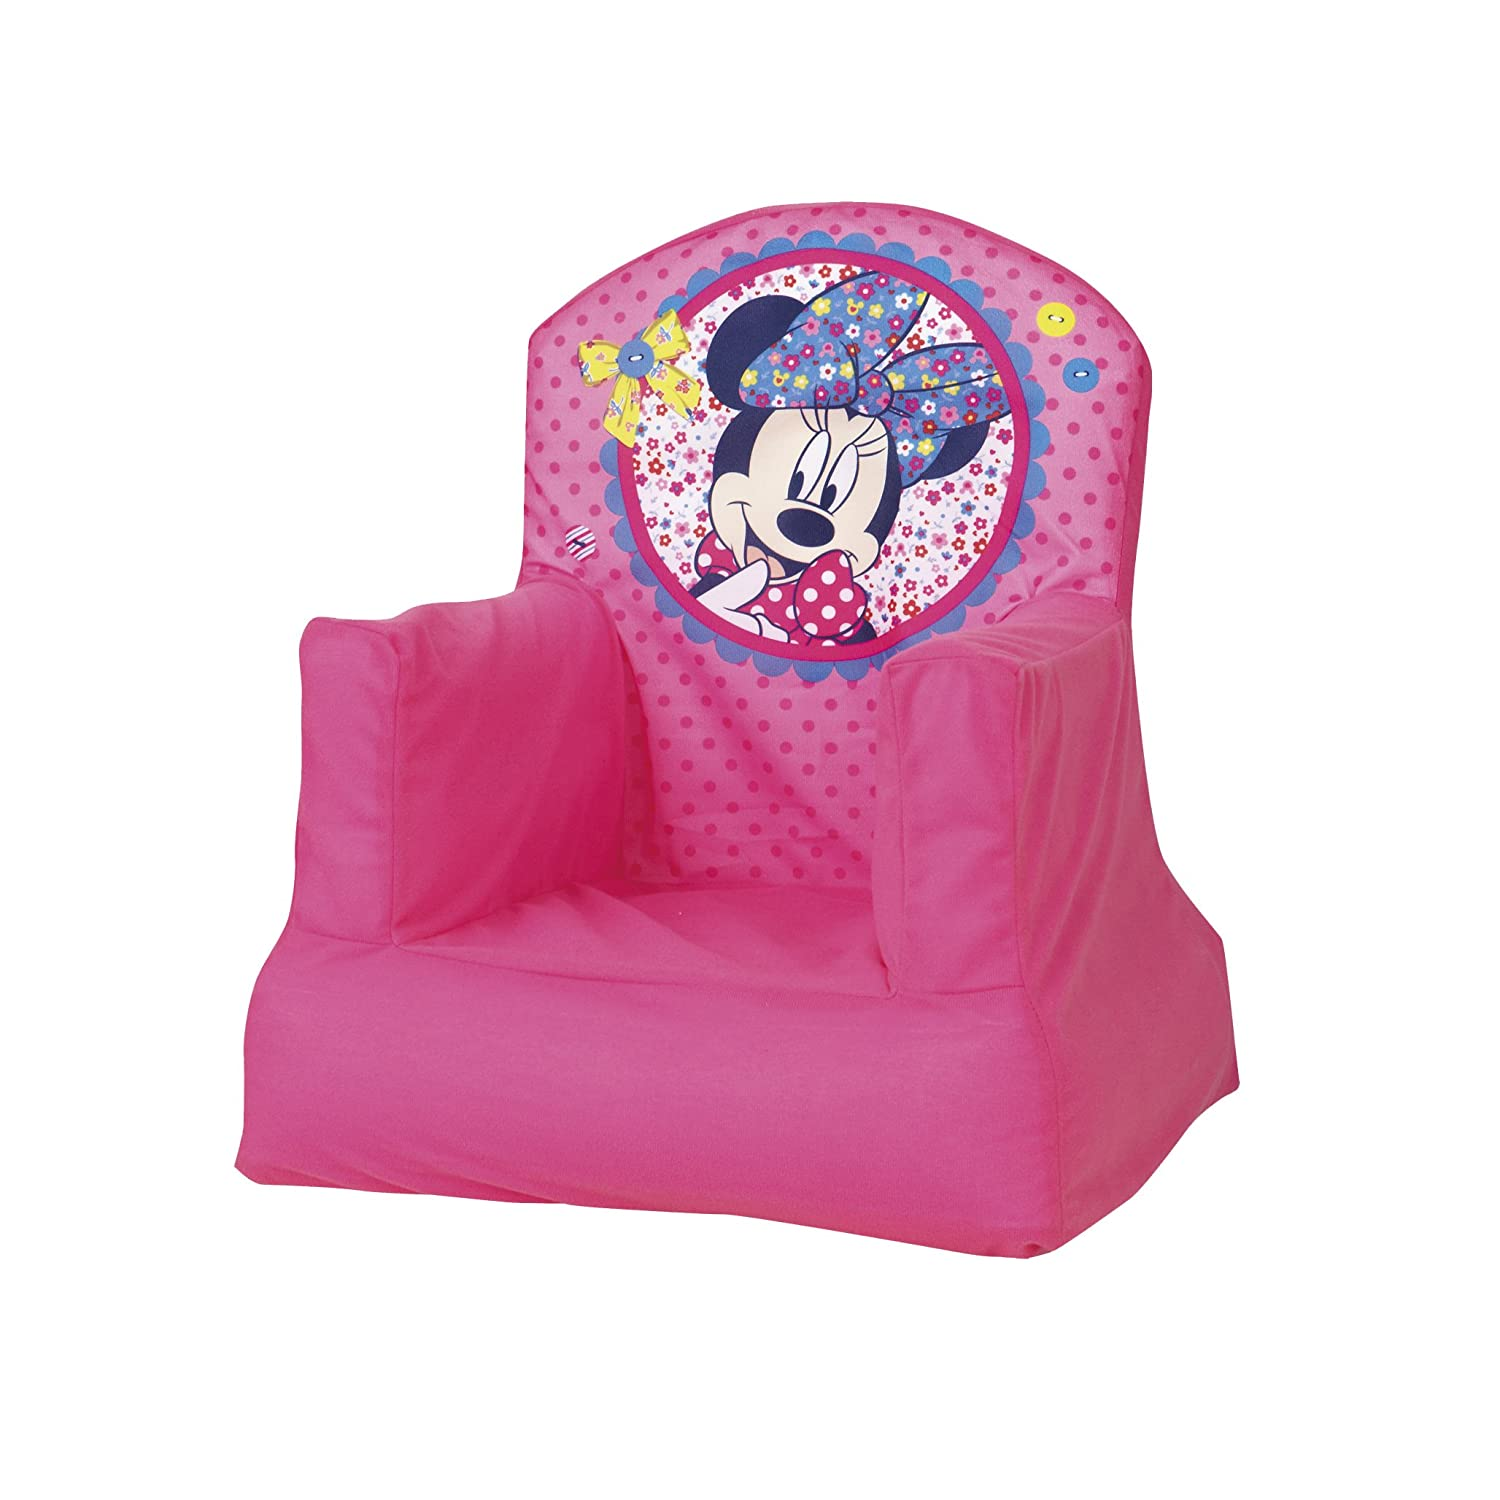 Disney Minnie Mouse Inflatable Chair For Kids Amazon